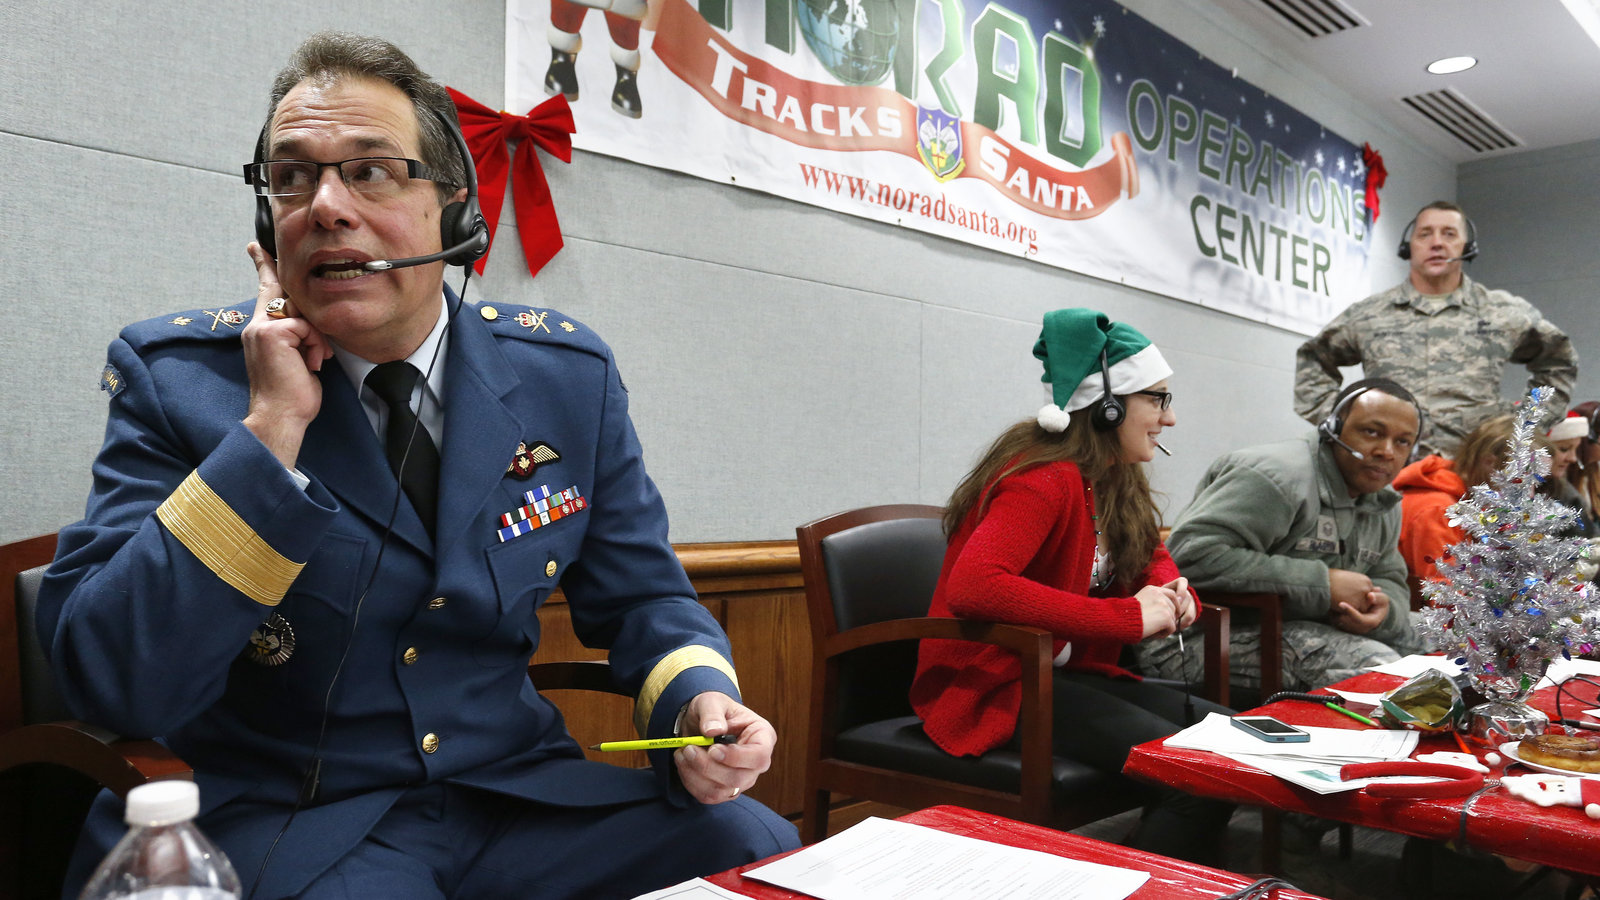 Operations Command Center at Peterson Air Force Base in Colorado during the North American Aerospace Defense Command (NORAD) annual mission tracking the Christmas Eve worldwide journey of Santa Claus.